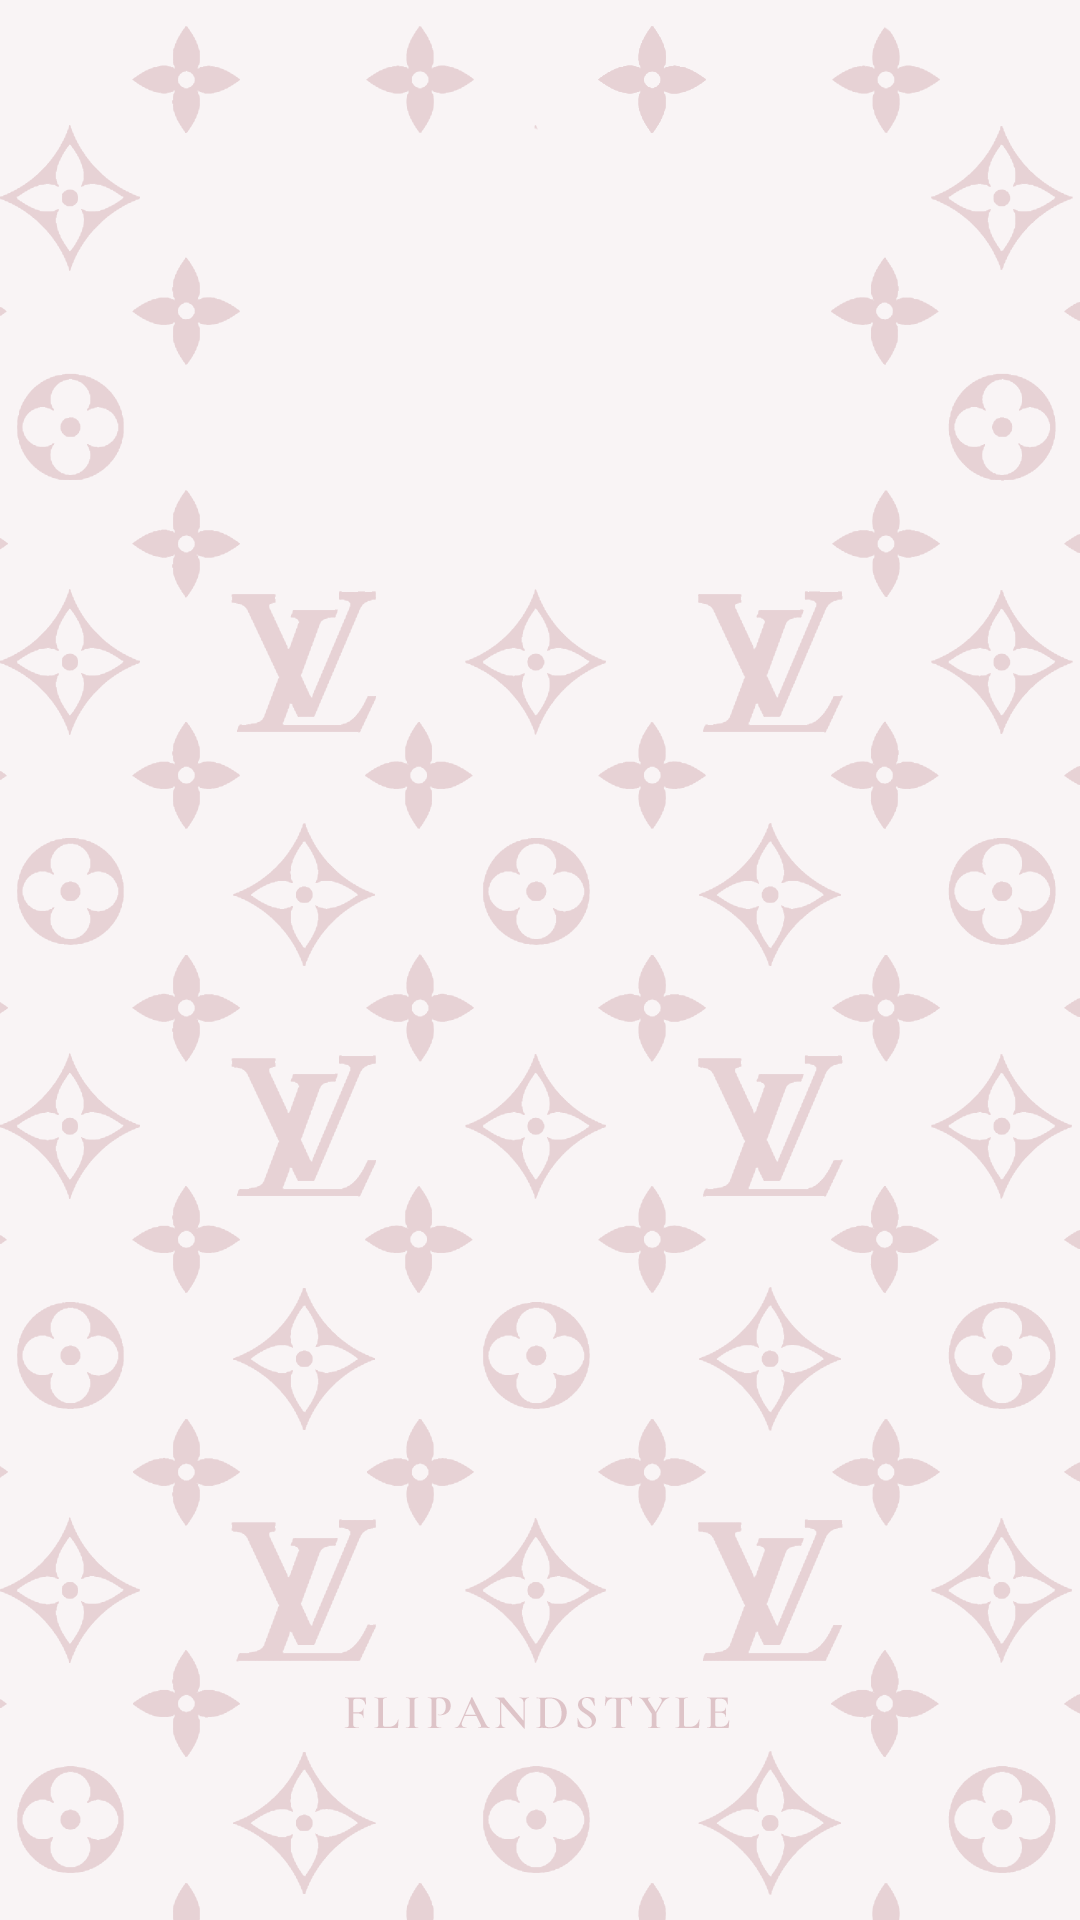 Pink Louis Vuitton In 2020 Pink Wallpaper Iphone Aesthetic Iphone Wallpaper Iphone Background Wallpaper